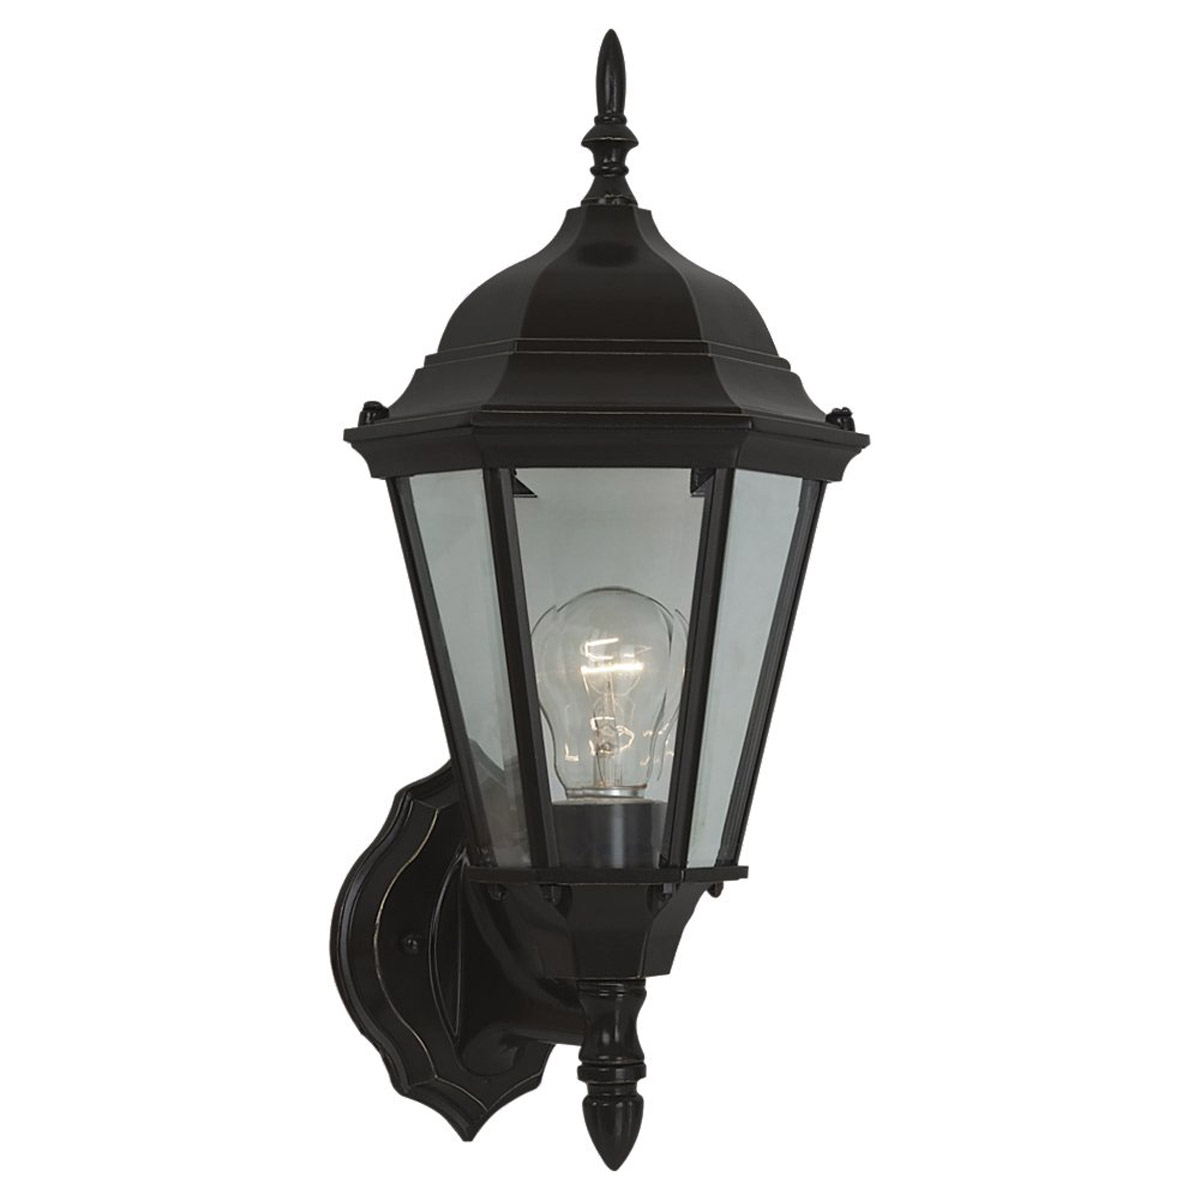 Sea Gull Lighting Bakersville 1 Light Outdoor Wall Lantern in Heirloom Bronze 88941-782